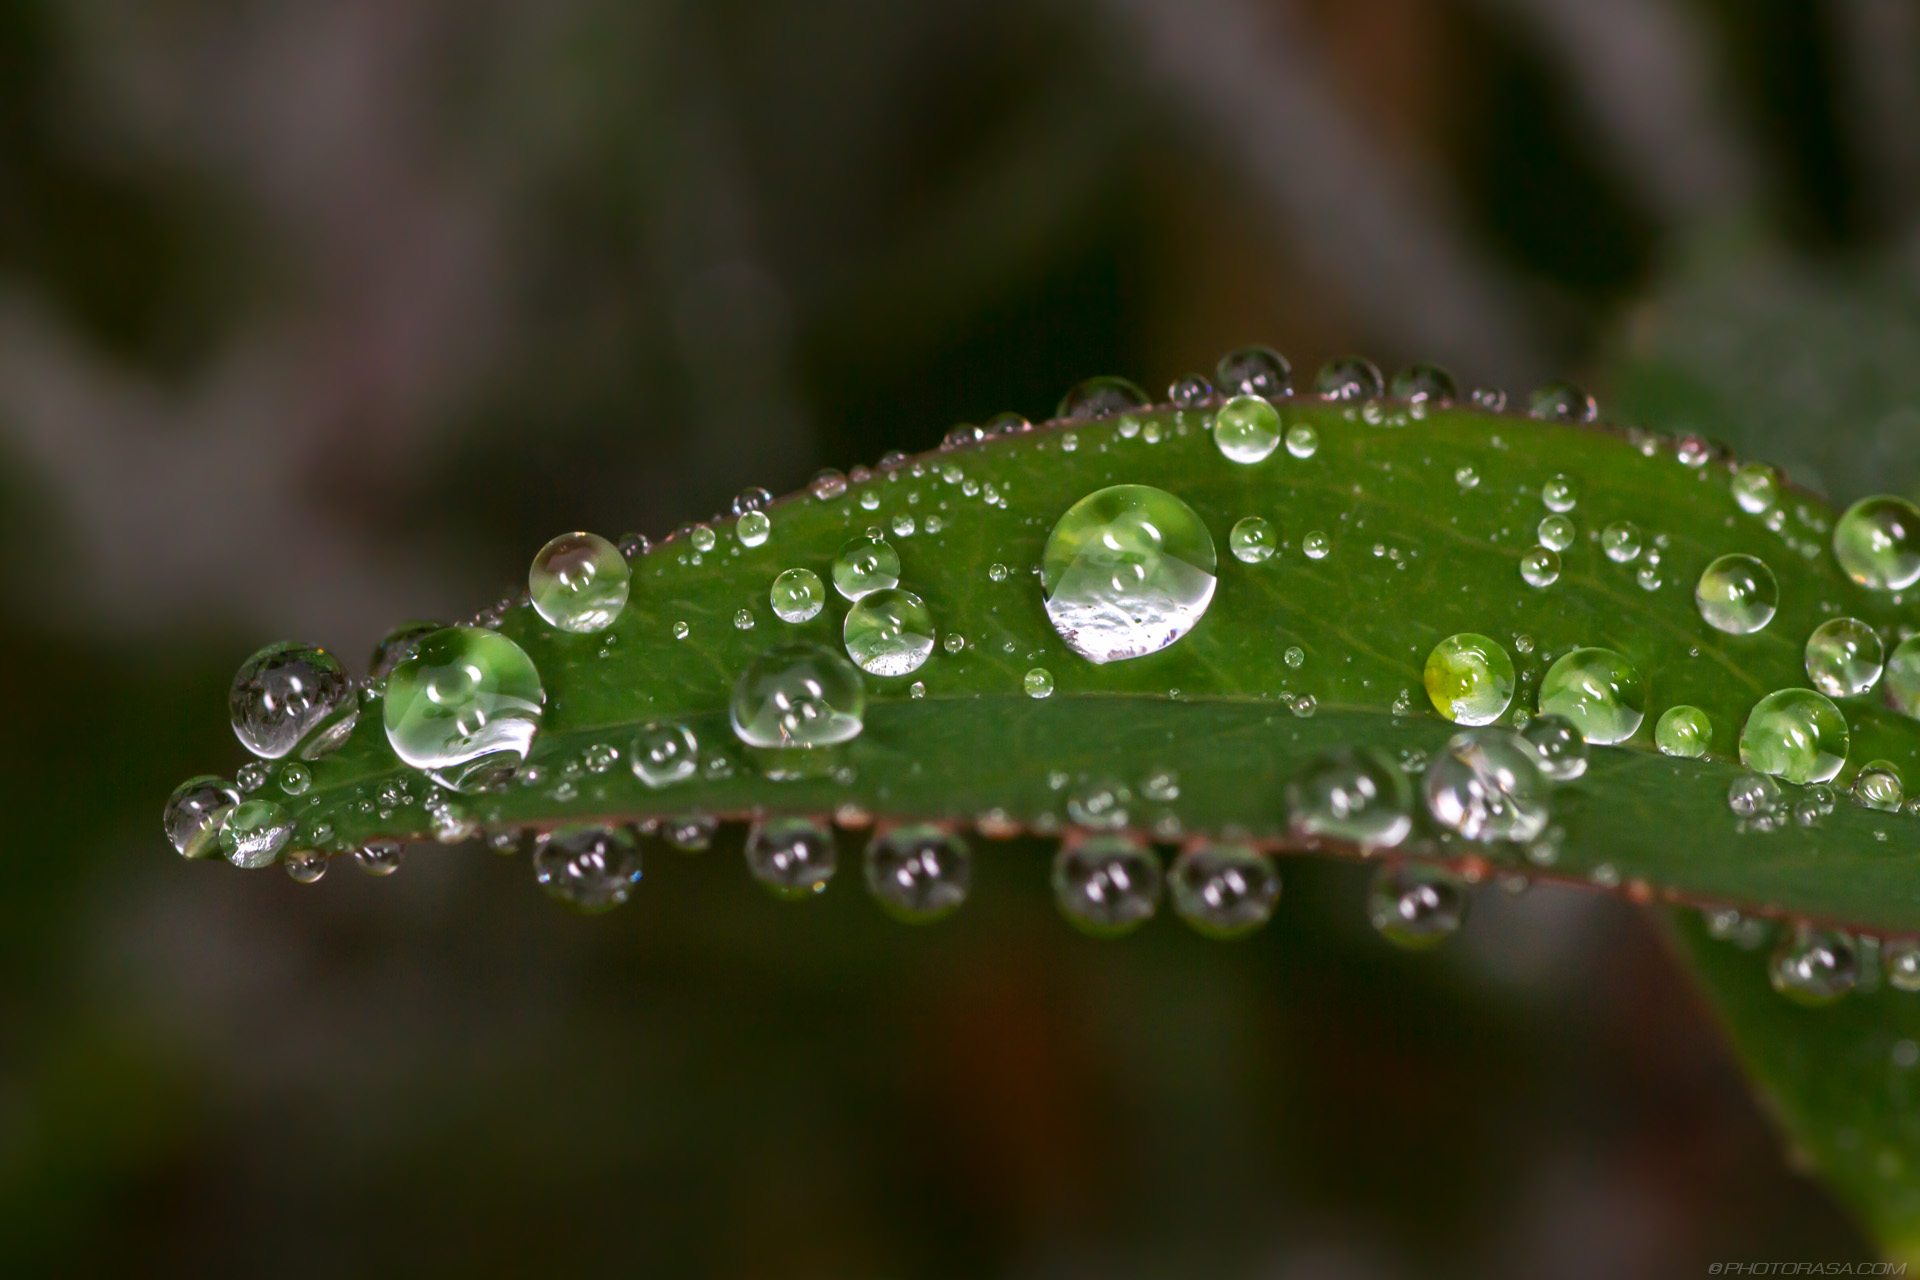 http://photorasa.com/tiny-water-droplets-on-plants/droplets-of-water-on-tiny-green-leaf/